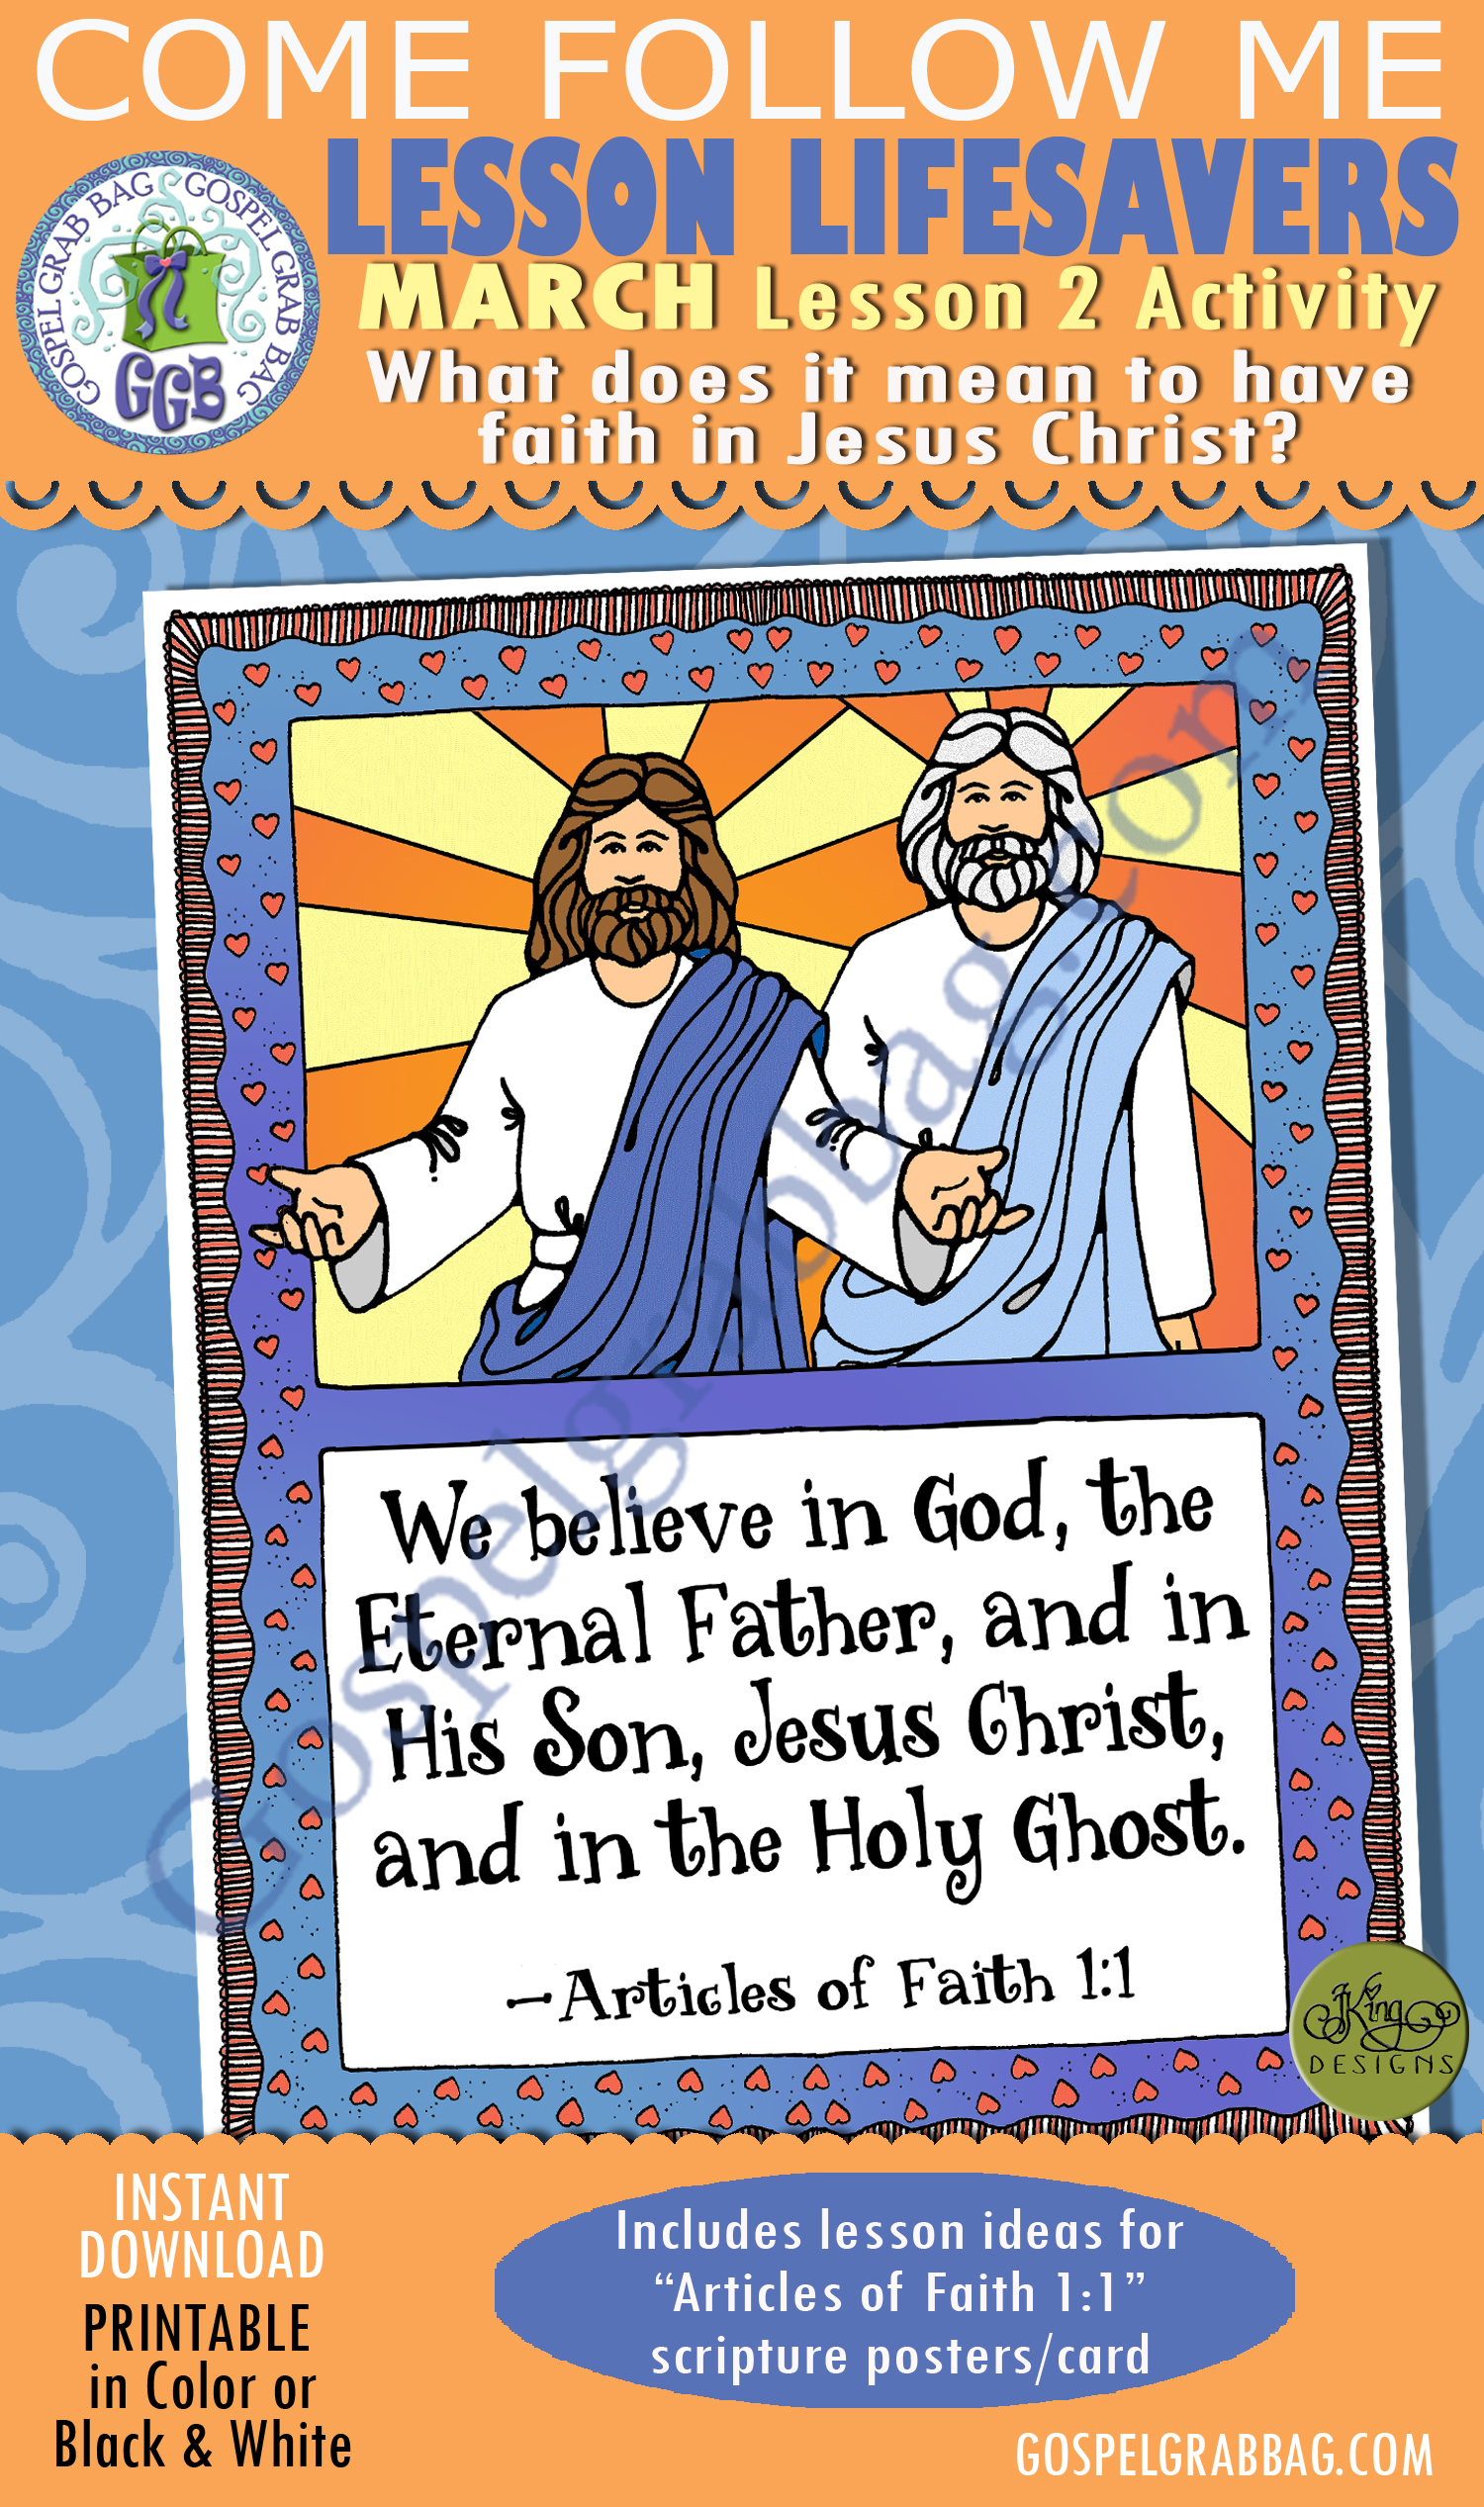 """$2.00 MARCH Lesson 2 Come Follow Me """"What does it mean to have faith in Jesus Christ?"""" ACTIVITY: """"We believe in . . . Jesus Christ"""" Articles of Faith 1:1 poster and cards"""